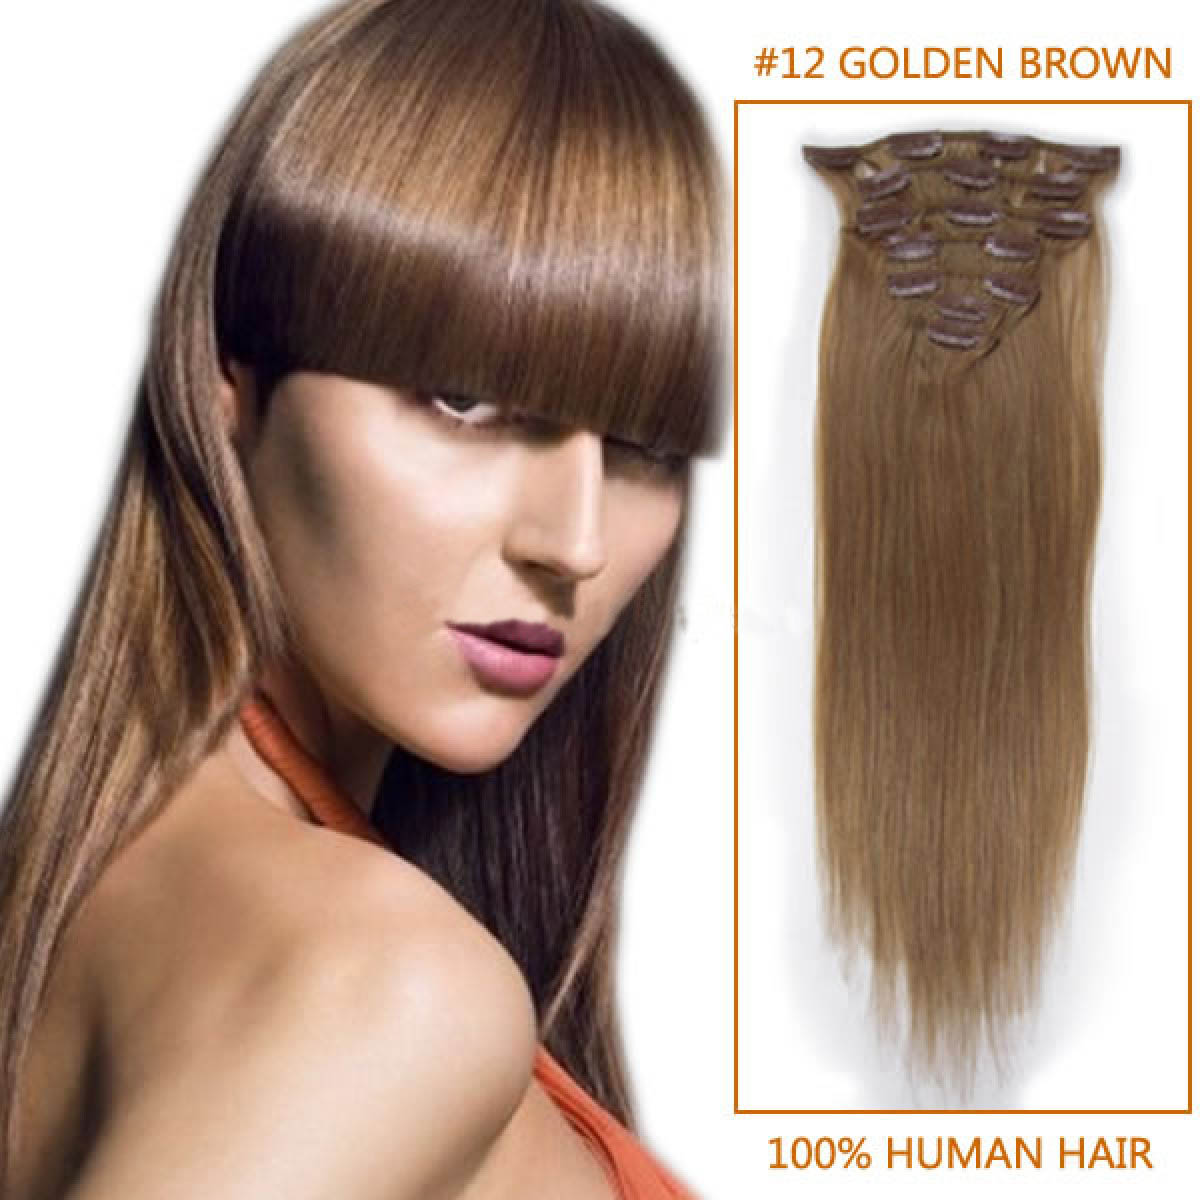 18 Inch 12 Golden Brown Clip In Remy Human Hair Extensions 12pcs